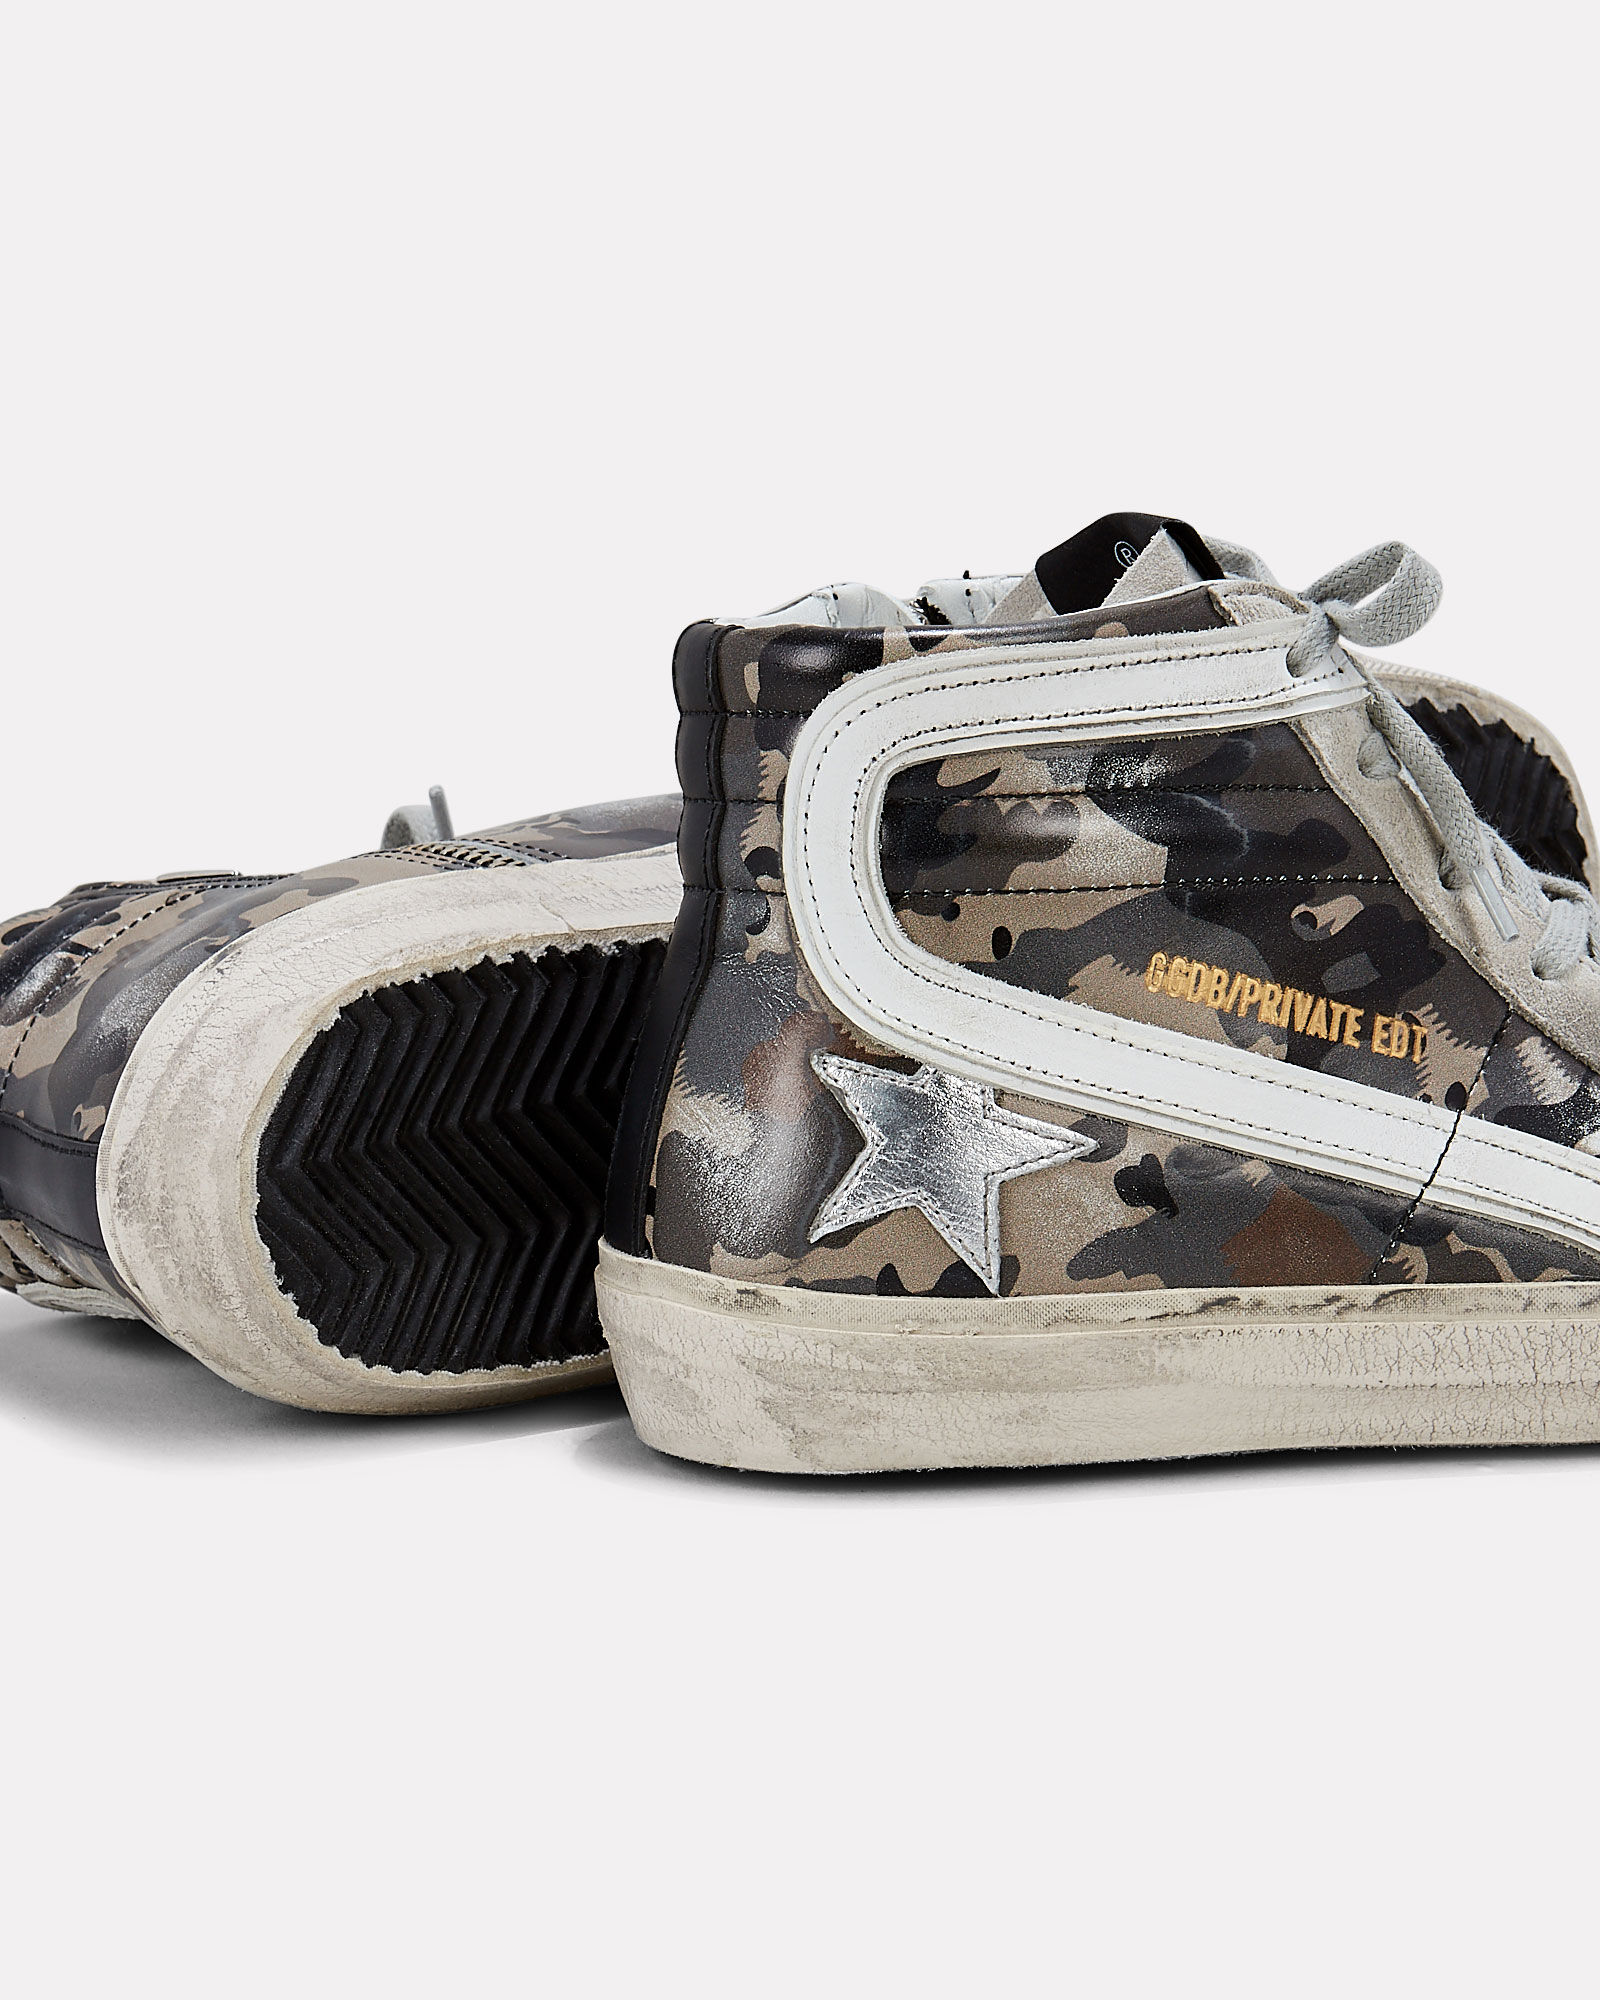 Slide Camo High-Top Sneakers, OLIVE/ARMY, hi-res